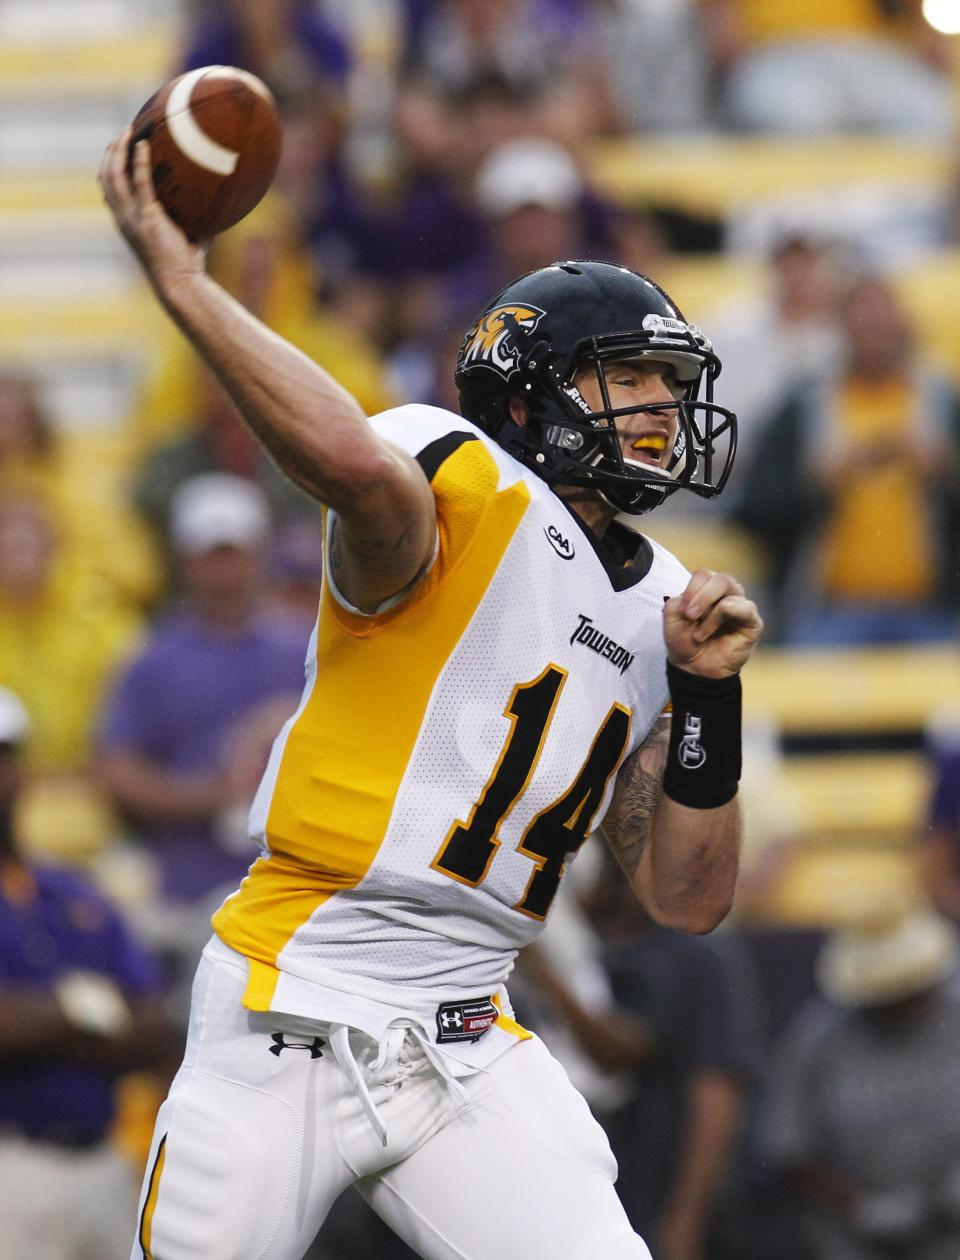 Towson quarterback Grant Enders throws a pass against LSU in the first half of an NCAA college football game in Baton Rouge, La., Saturday, Sept. 29, 2012. (AP Photo/Bill Haber)